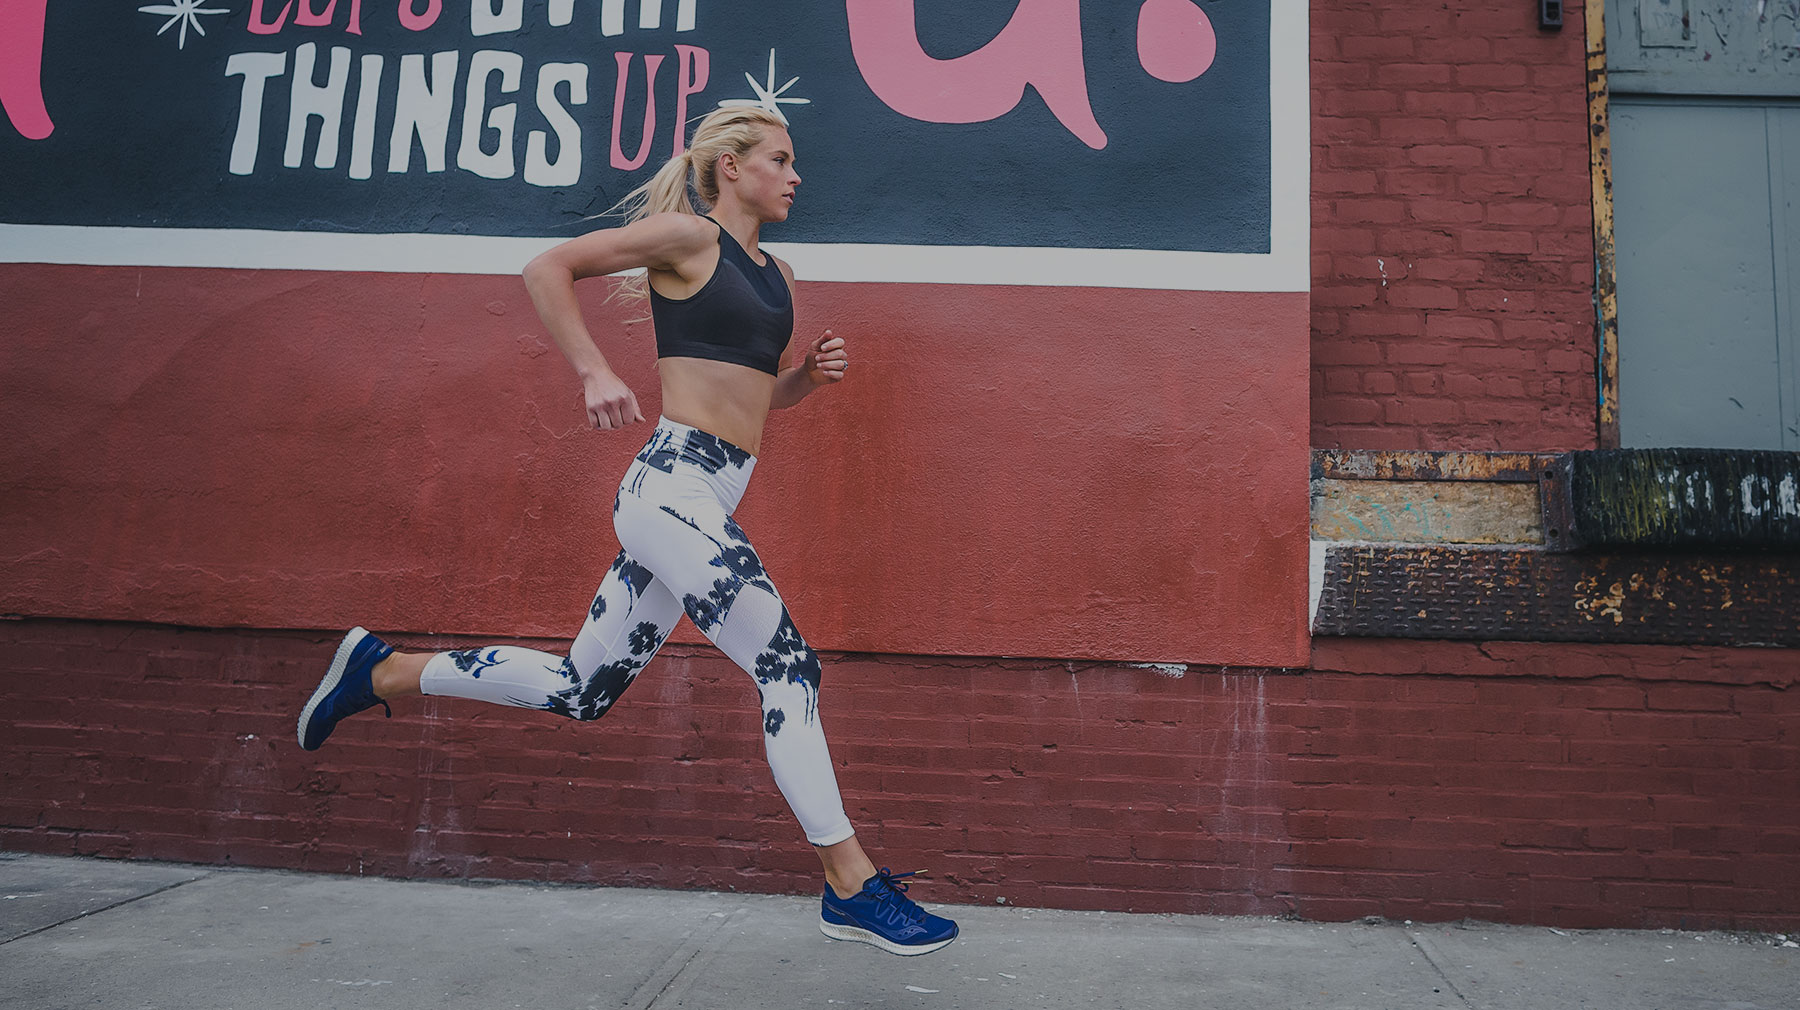 Life on the Run - Saucony apparel beyond the run.